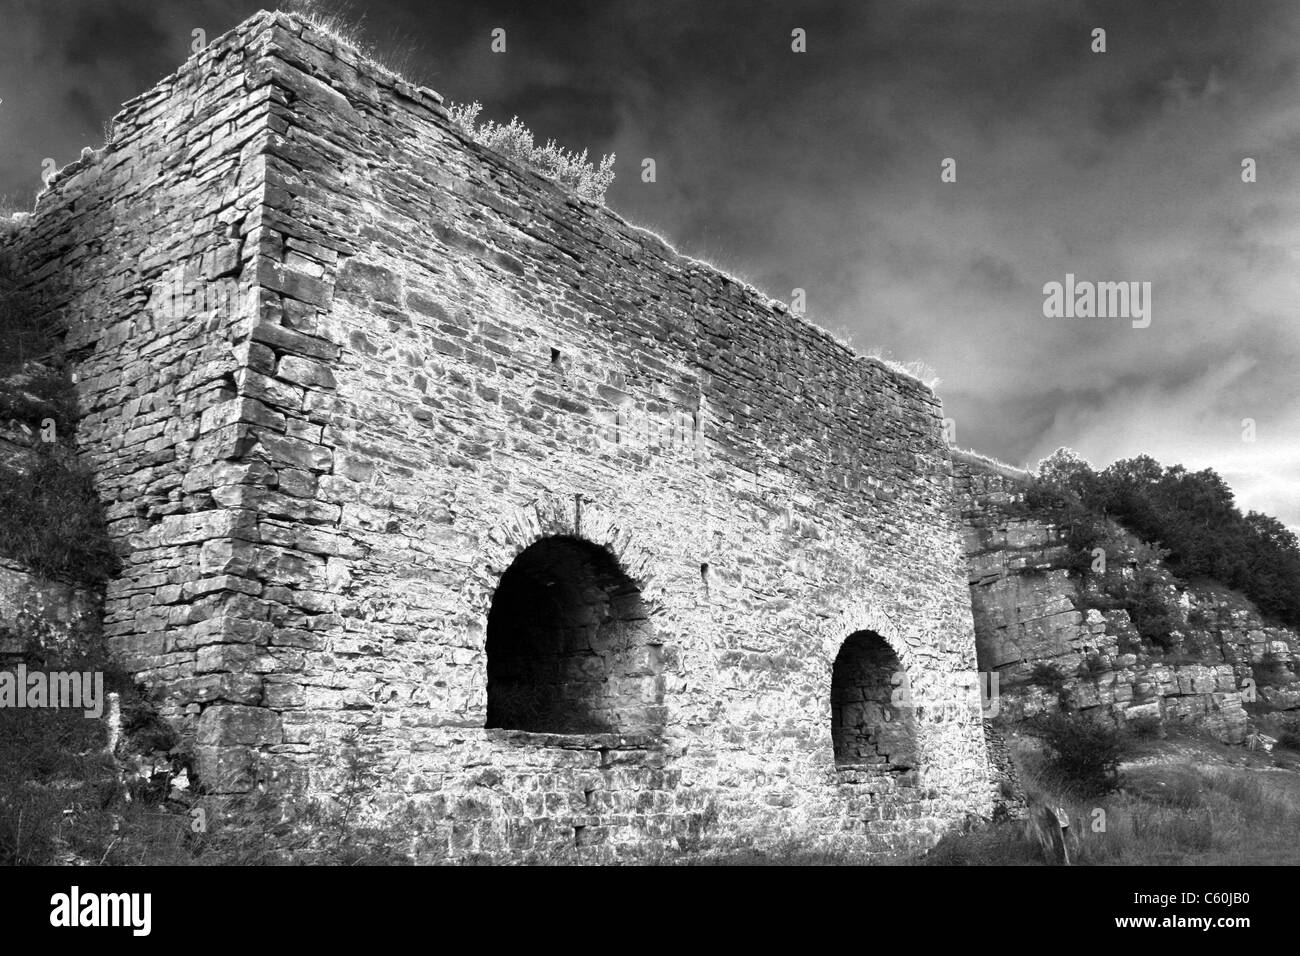 Old Lime Kilns at Smardale NNR, Cumbria, UK With A b/w Solarised Photography Effect - Stock Image